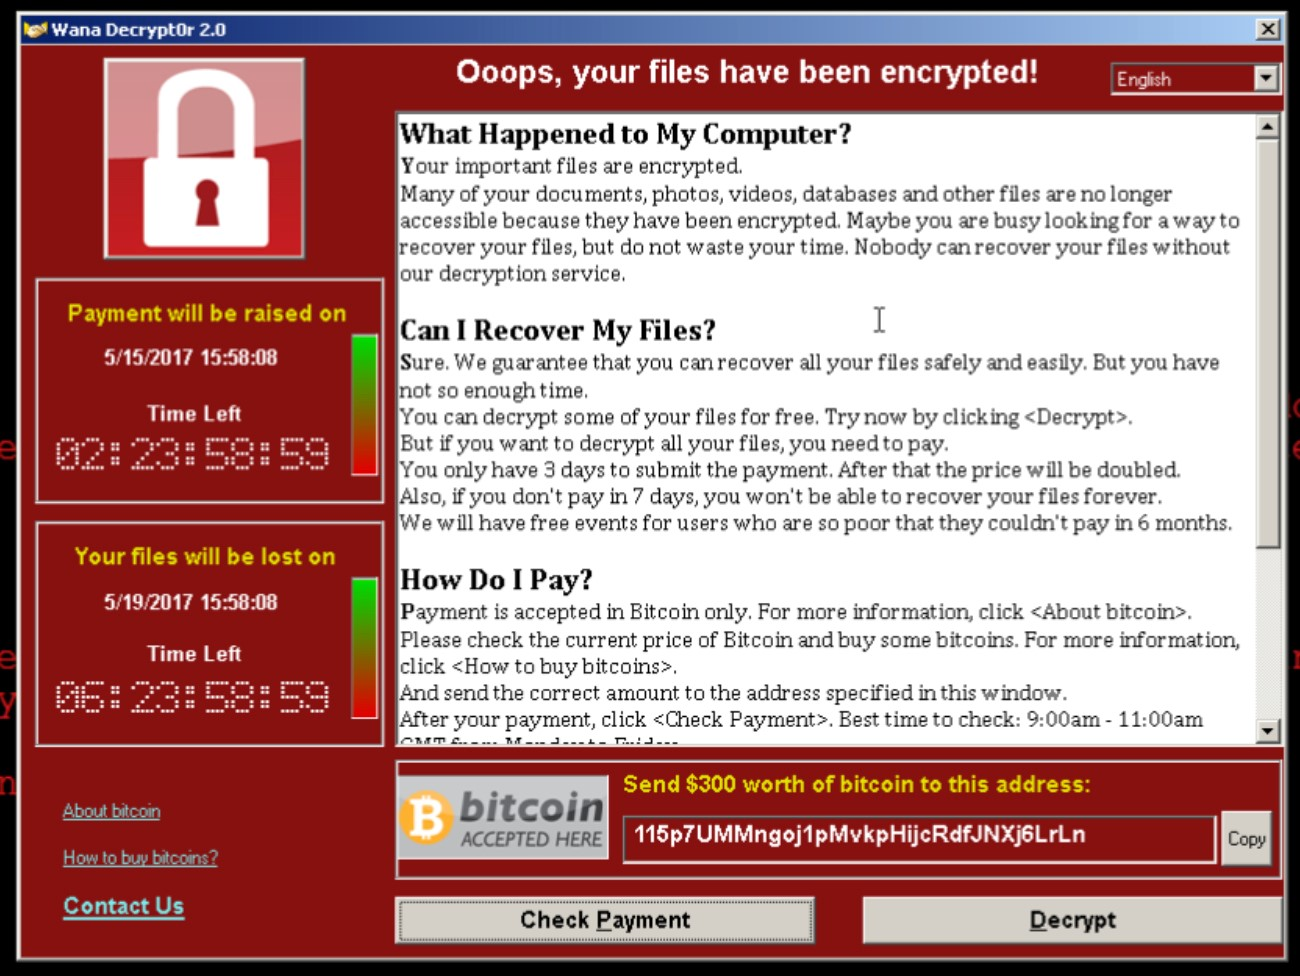 Using GigaSECURE to Detect WannaCry Infected Hosts in Your